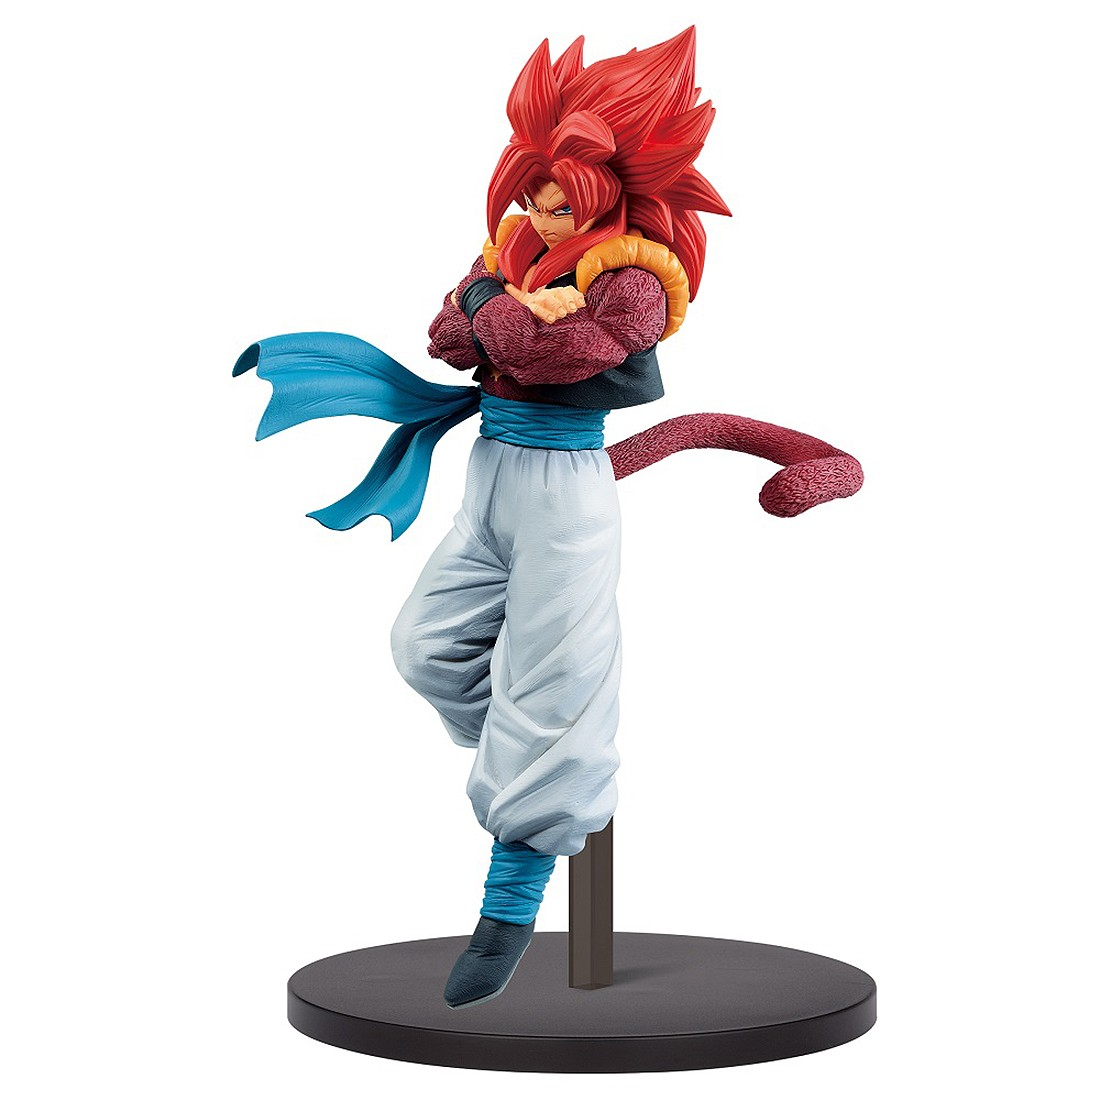 PREORDER - Banpresto Dragon Ball Super Son Goku Fes!! Vol 11 Super Saiyan 4 Gogeta Figure (red)